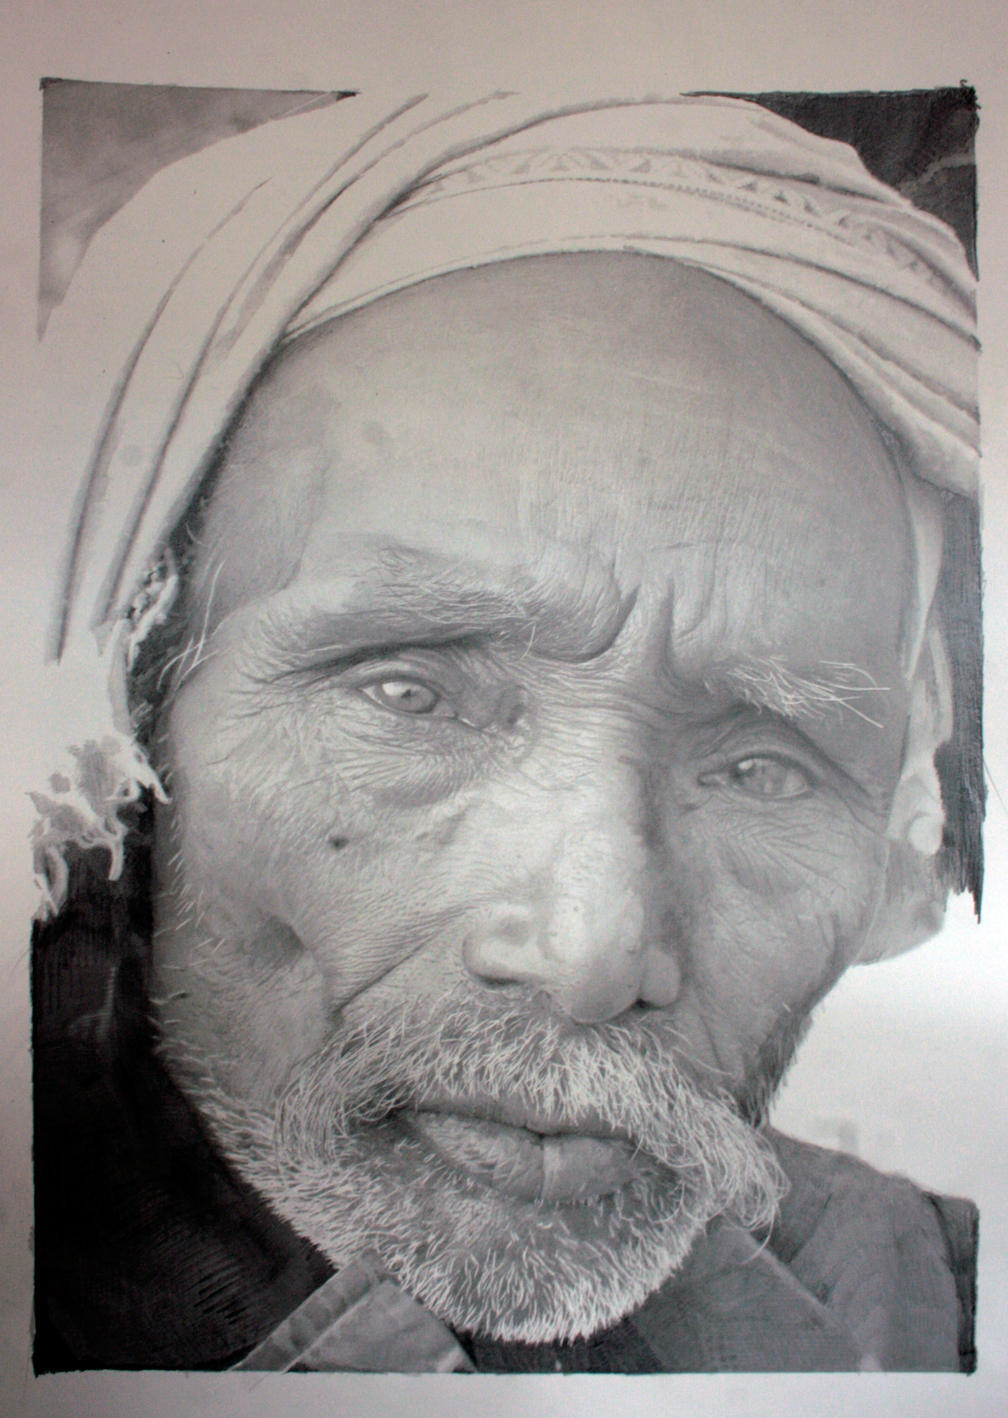 Paul+Cadden+Hyperrealistic+Drawings+%25282%2529.jpg